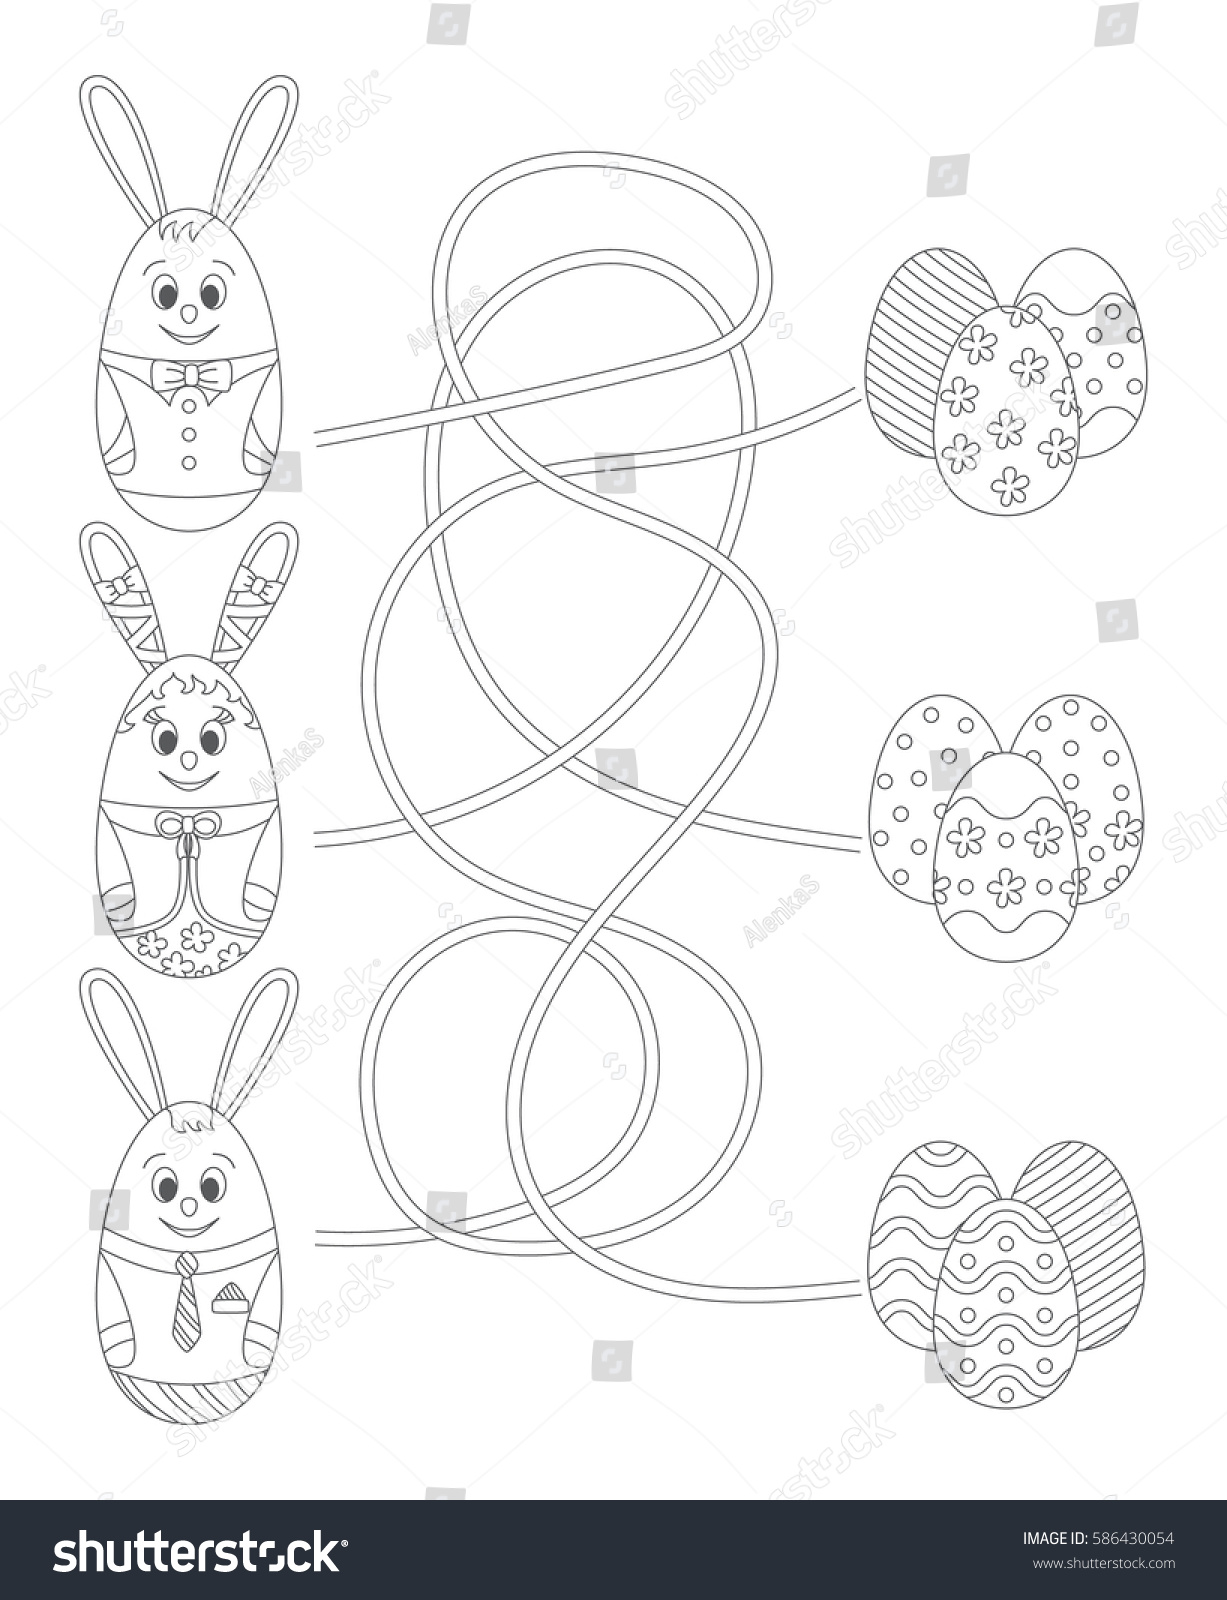 Easter Mazes - Best Coloring Pages For Kids | 1600x1227